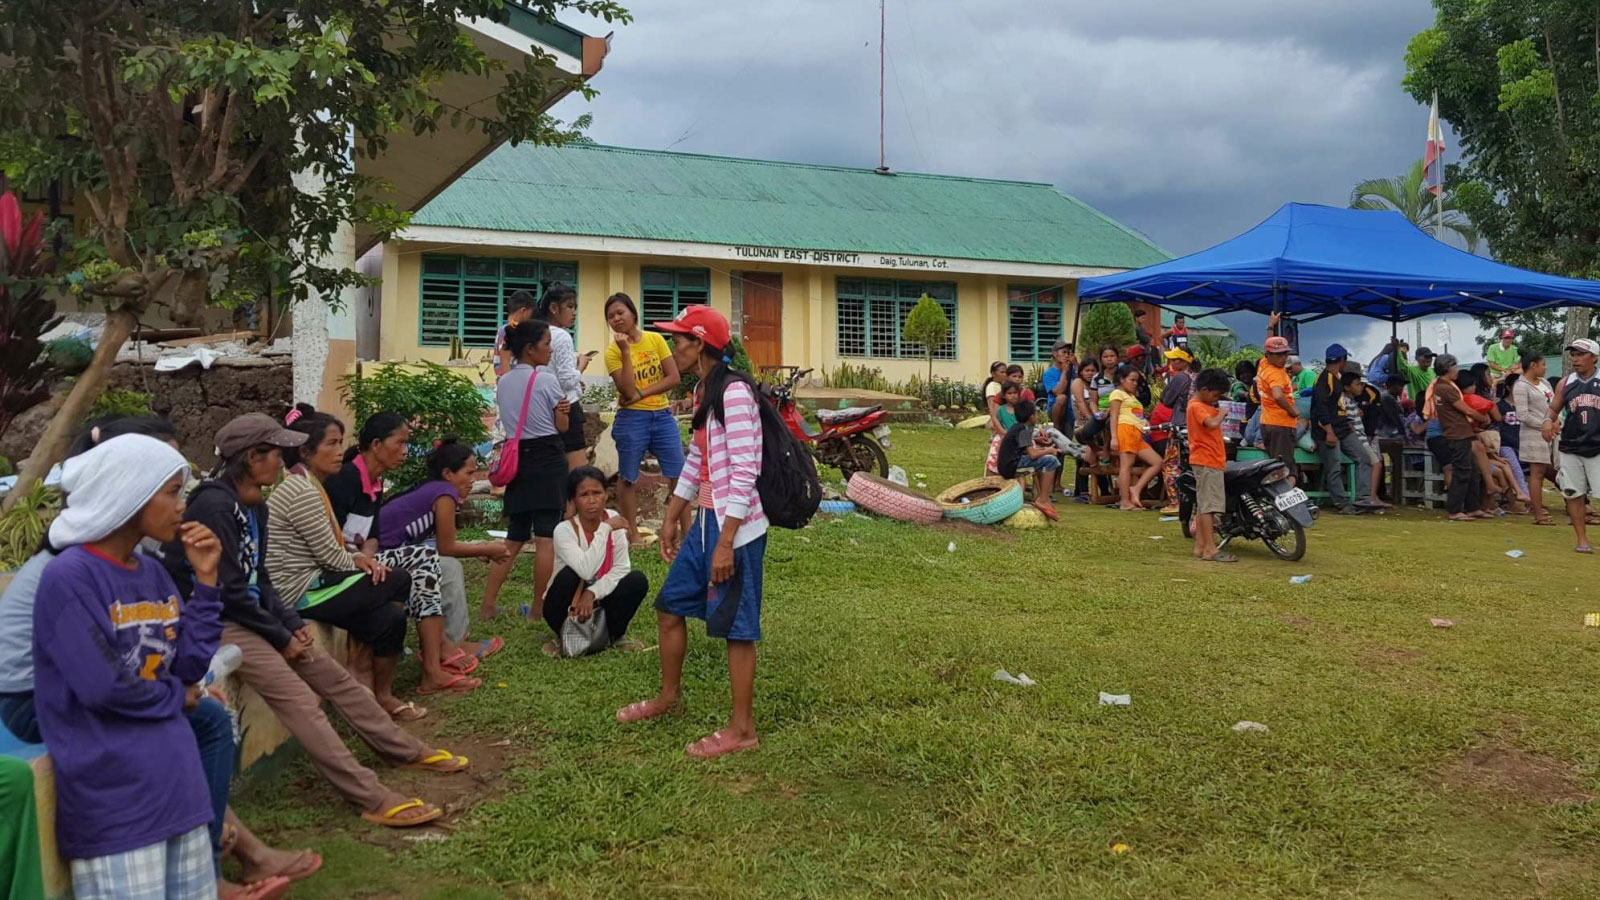 Filipinos-wait-outside-under-tents-and-trees-for-support-after-multiple-earthquakes-struck-the-Philippines-in-October